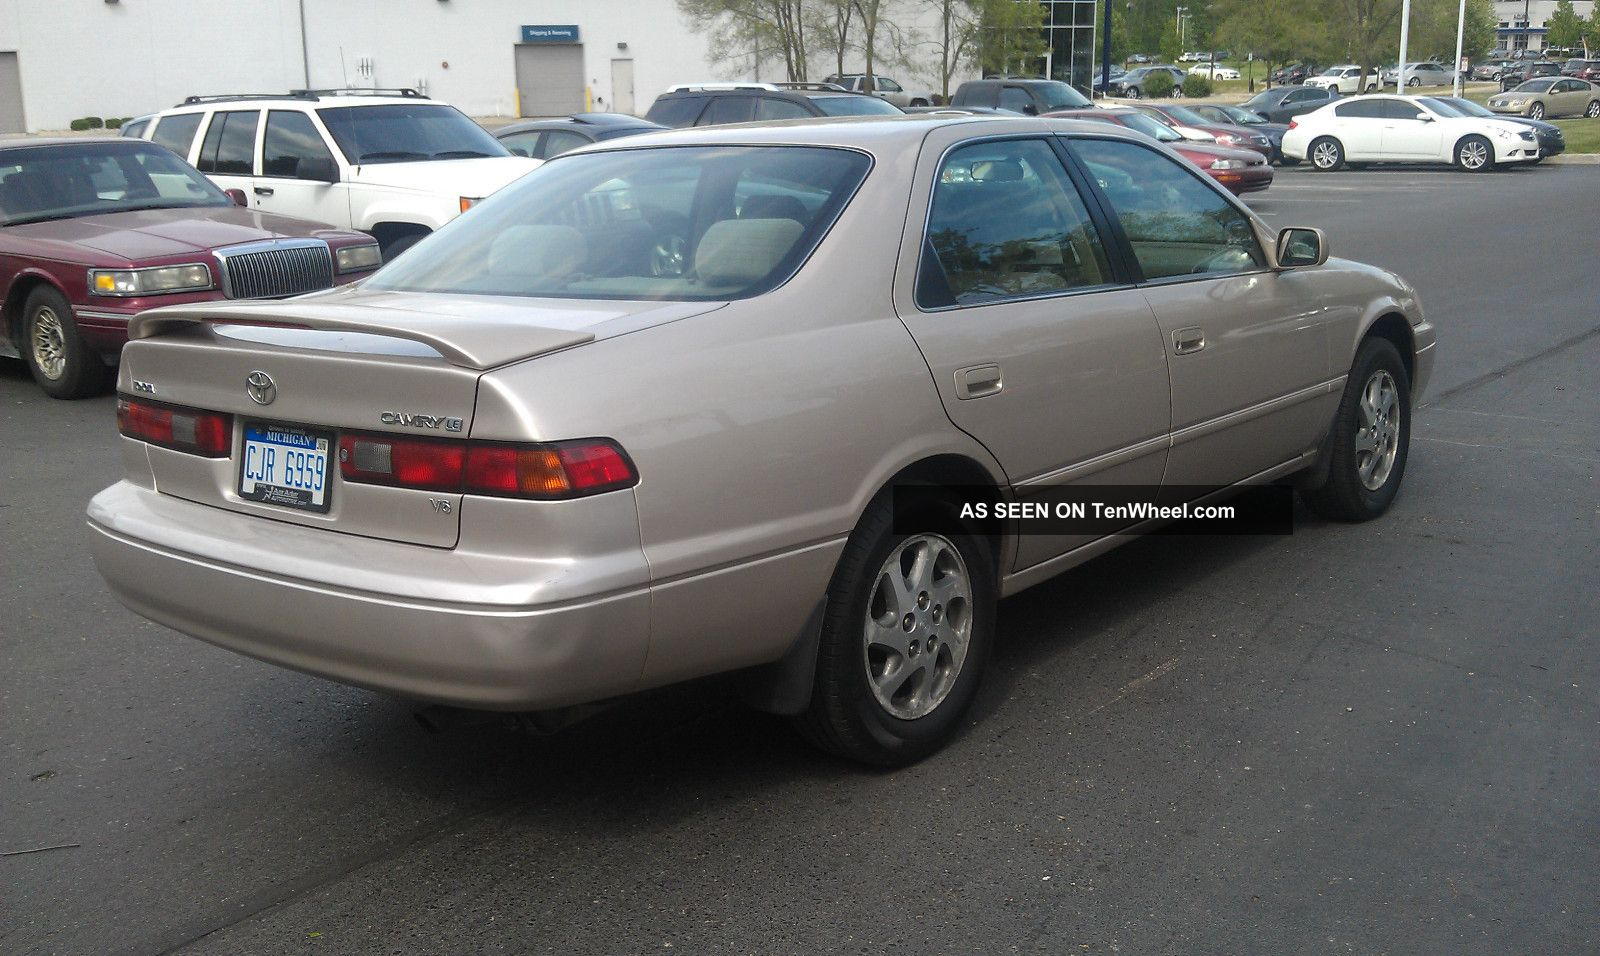 1999 toyota camry le 6 cyl 3 0l just detailed good to. Black Bedroom Furniture Sets. Home Design Ideas